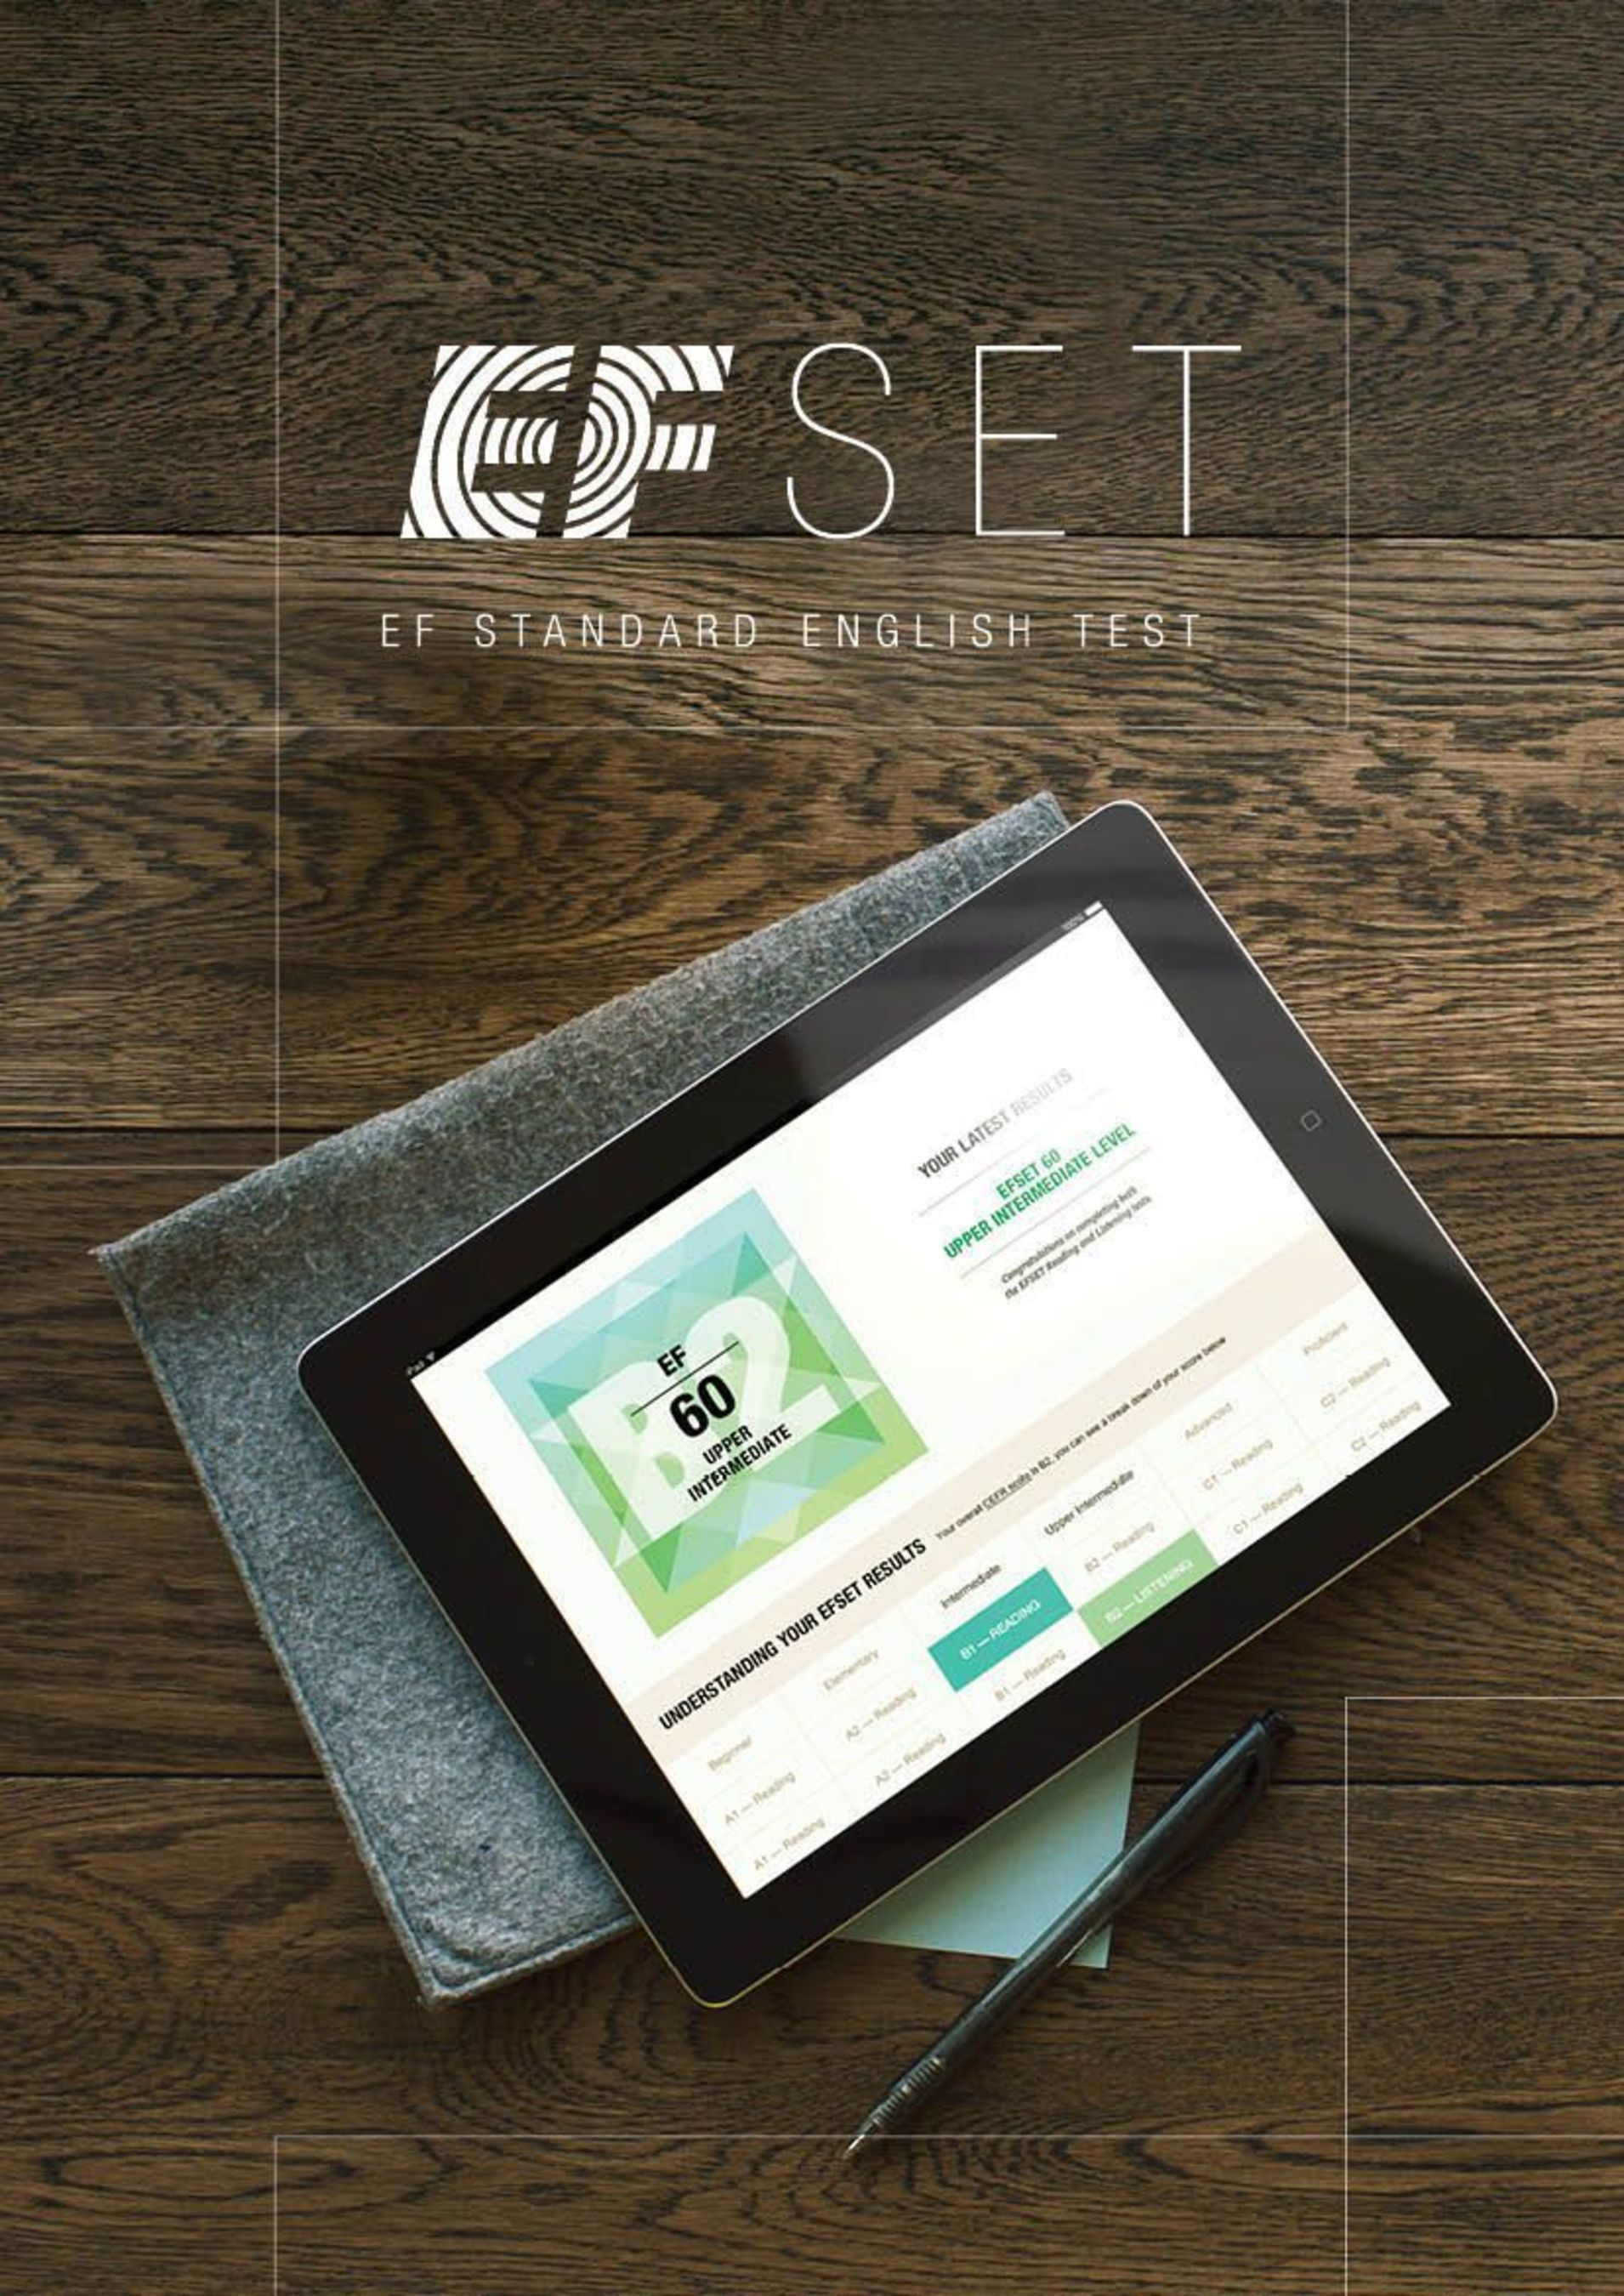 EF Education First to launch EF Standard English Test (EFSET), the worldâeuro(TM)s first free standardized English test, on September 30, 2014 (PRNewsFoto/EF Education First)